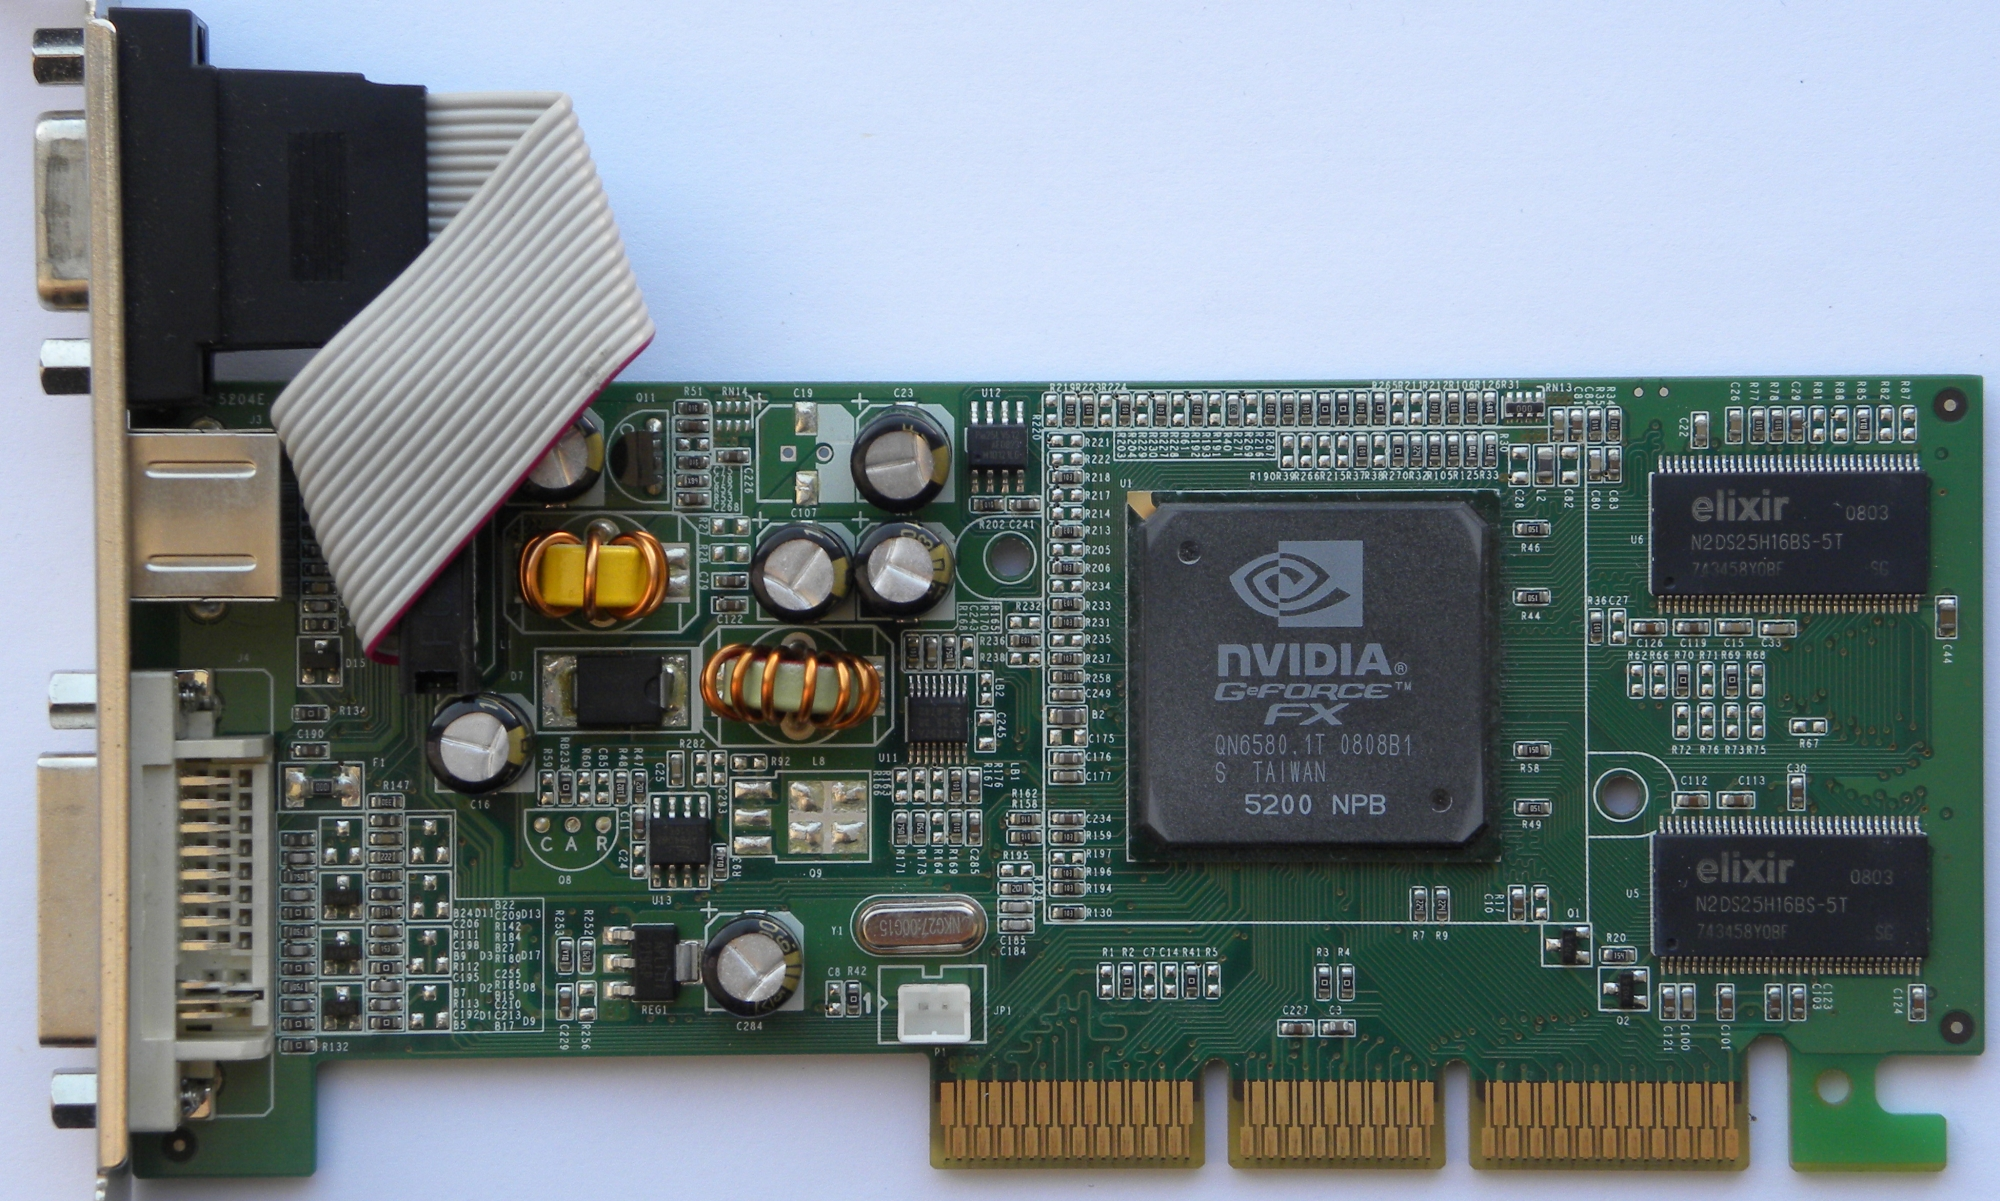 Nvidia geforce fx 5200 agp 128mb driver for mac download.